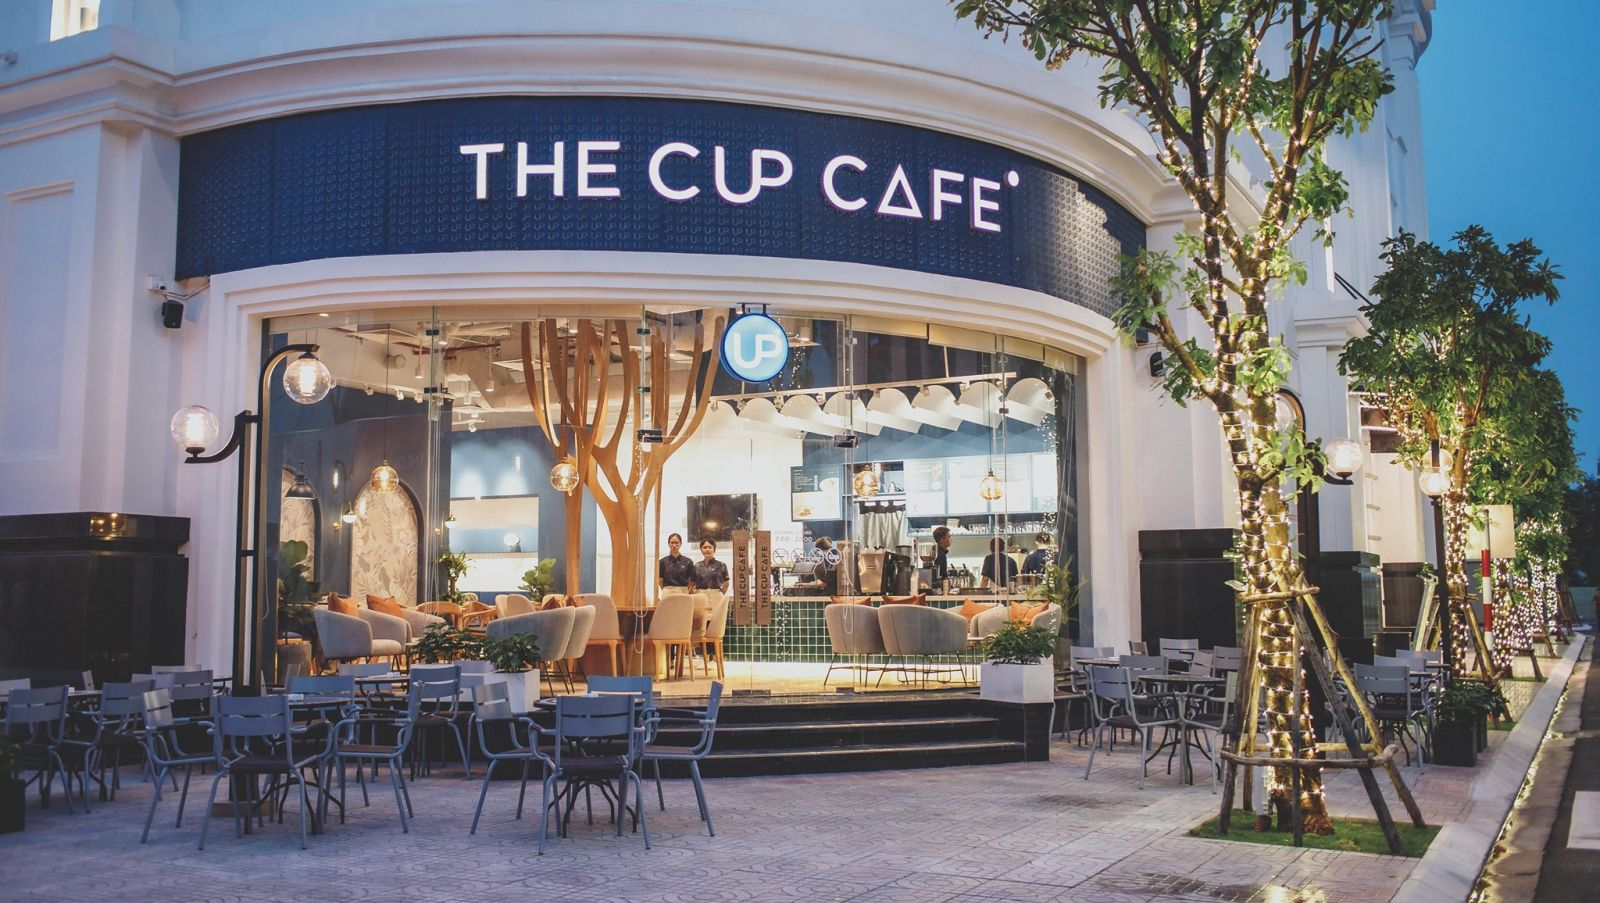 noi-that-quan-cafe-the-cup-cafe-vincom-di-an-1